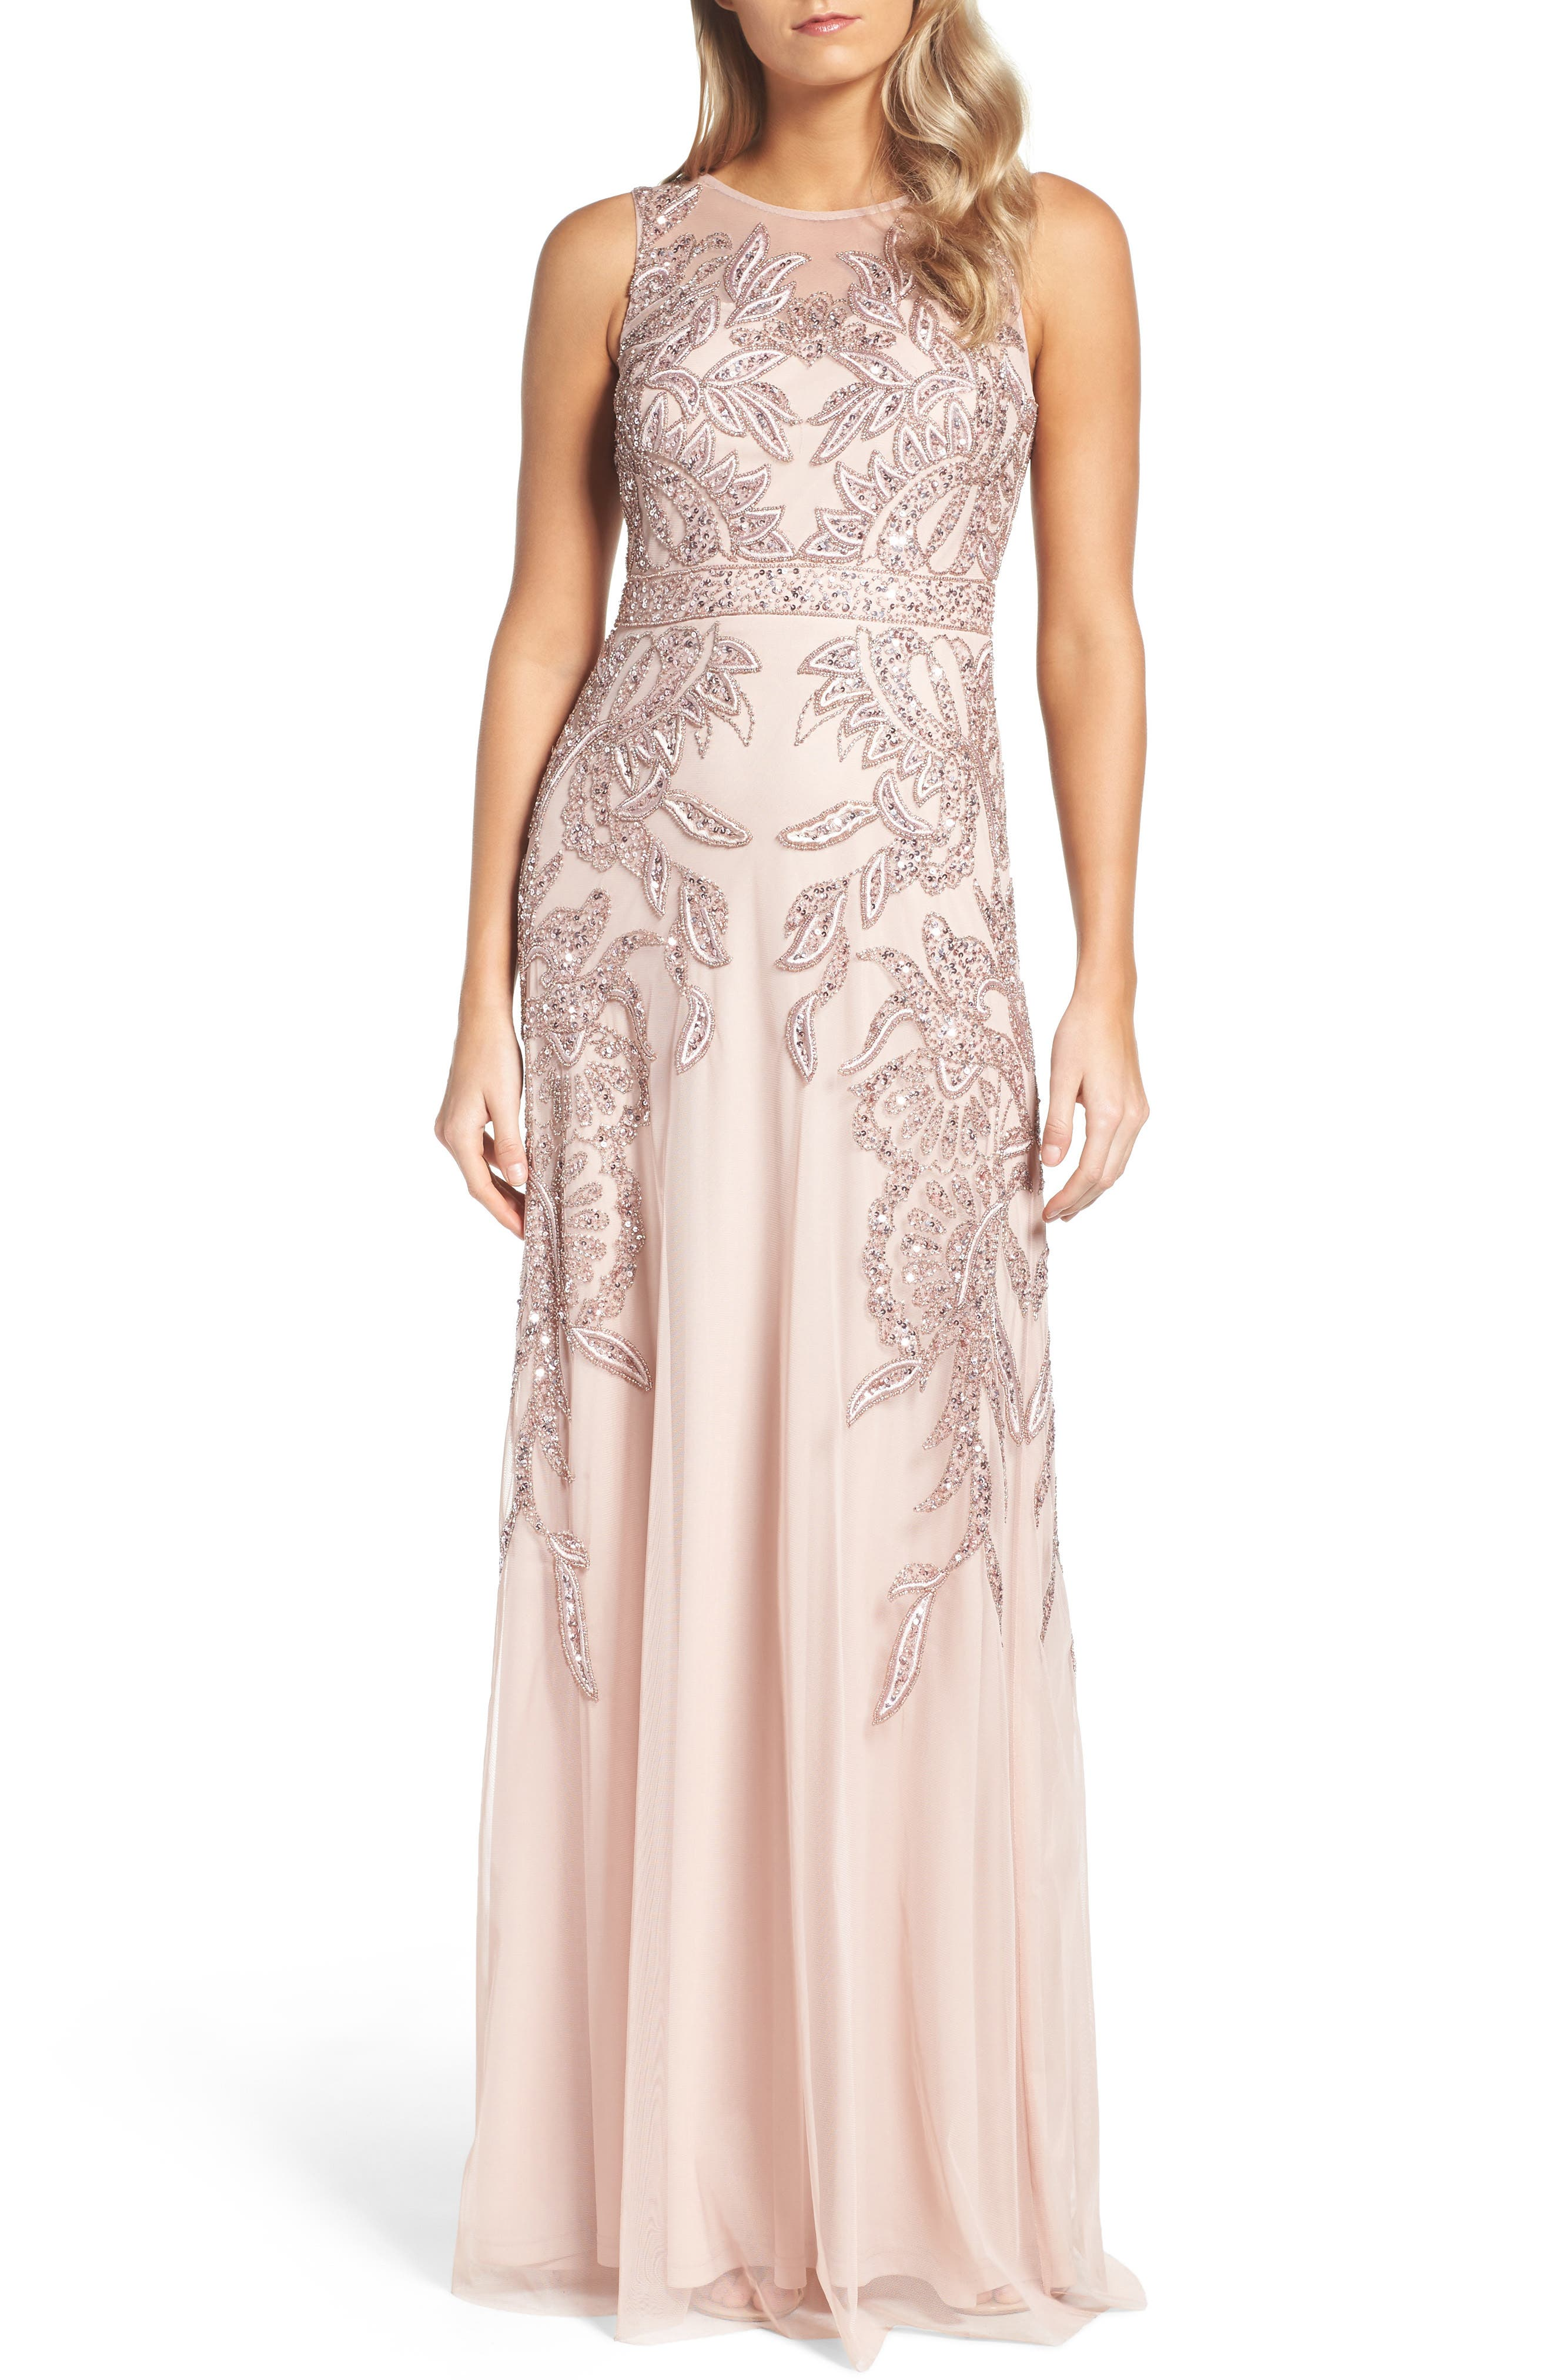 Alternate Image 1 Selected - Adrianna Papell Embellished Gown (Regular & Petite)